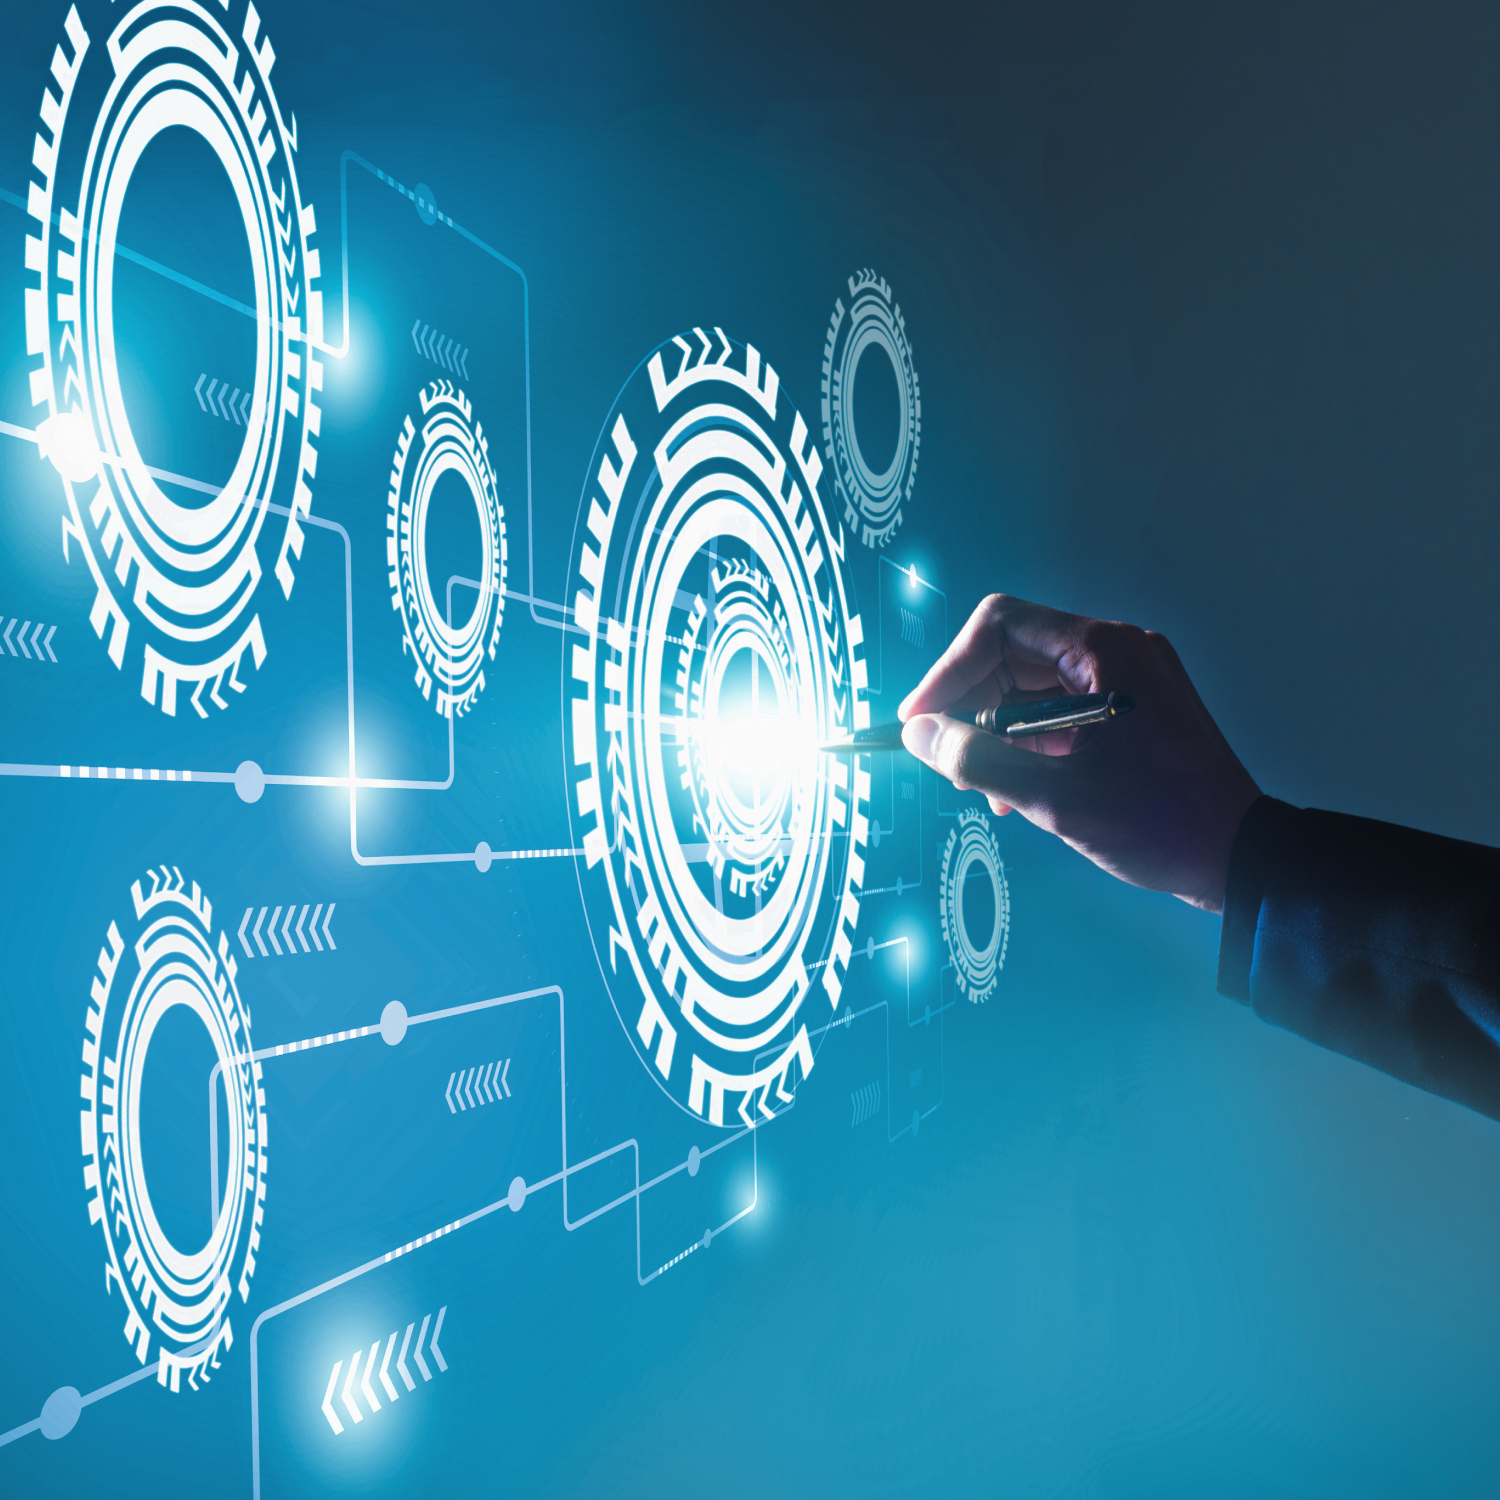 6 Robotic Process Automation Trends to Watch in 2021